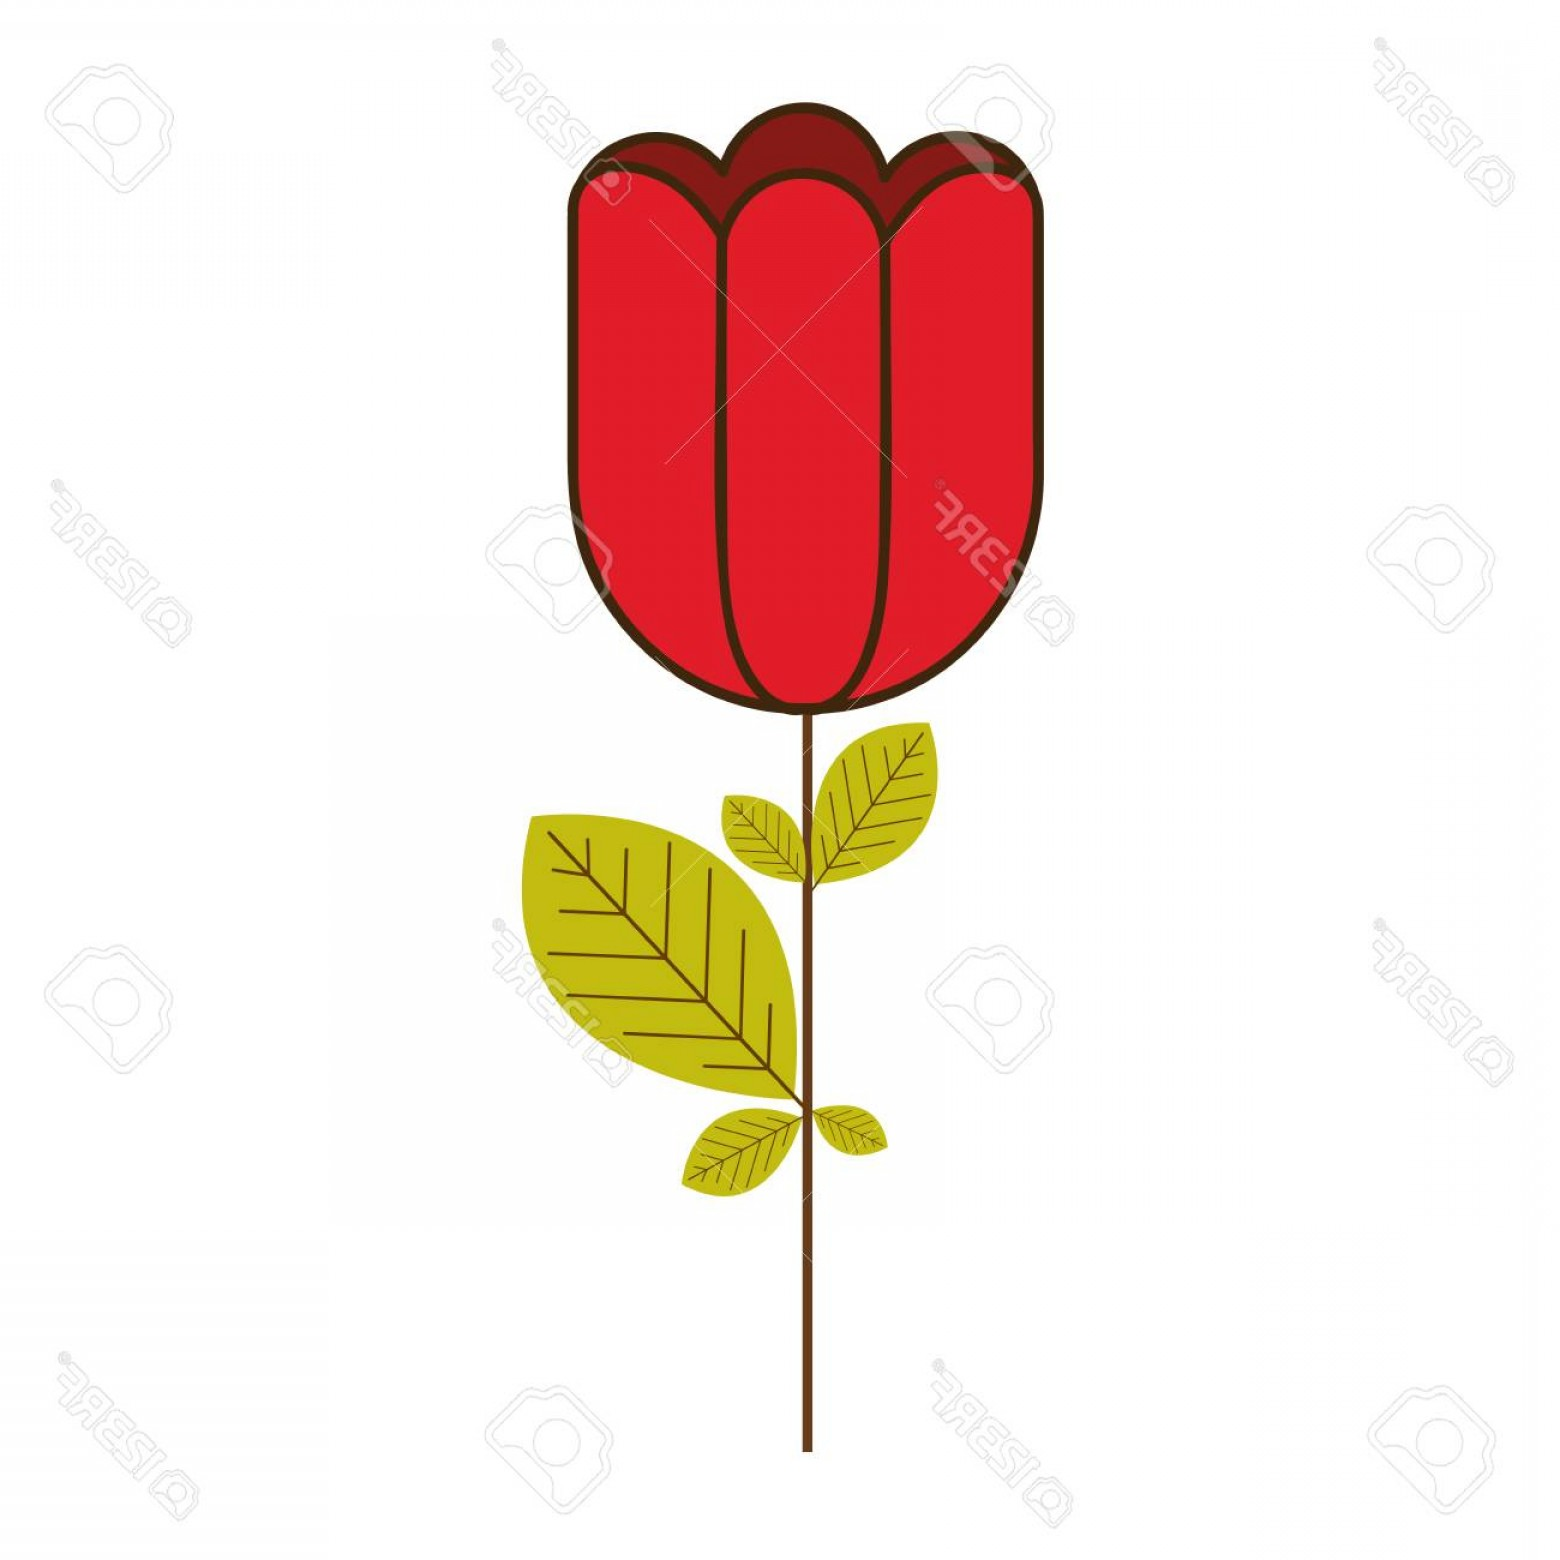 Bud Vector: Photostock Vector Colorful Silhouette With Rose Bud Vector Illustration